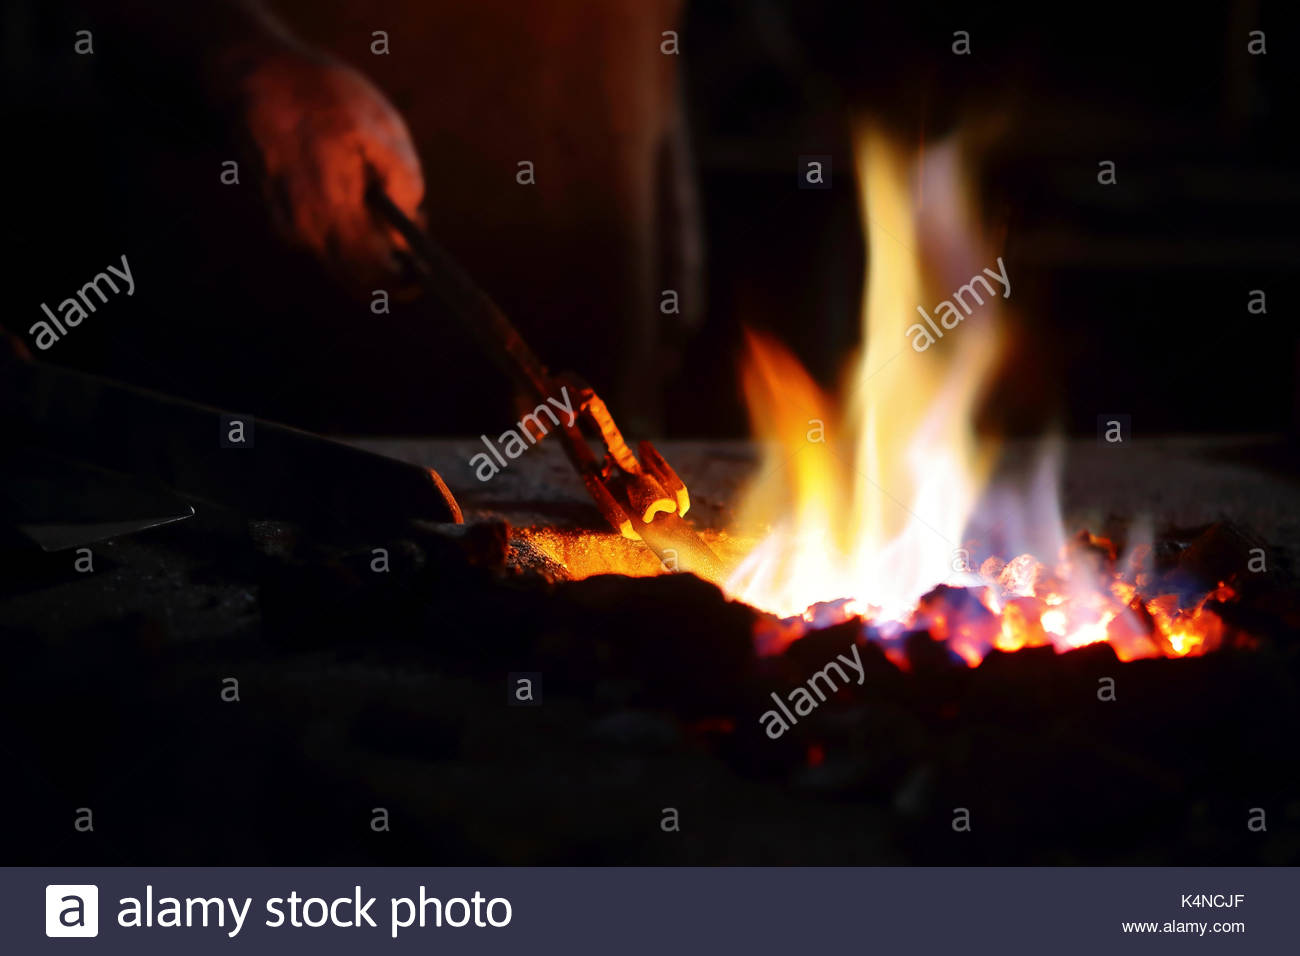 Close-up of  Blacksmith's hand and pincers heating molten iron in red hot burning coals and flames - Stock Image